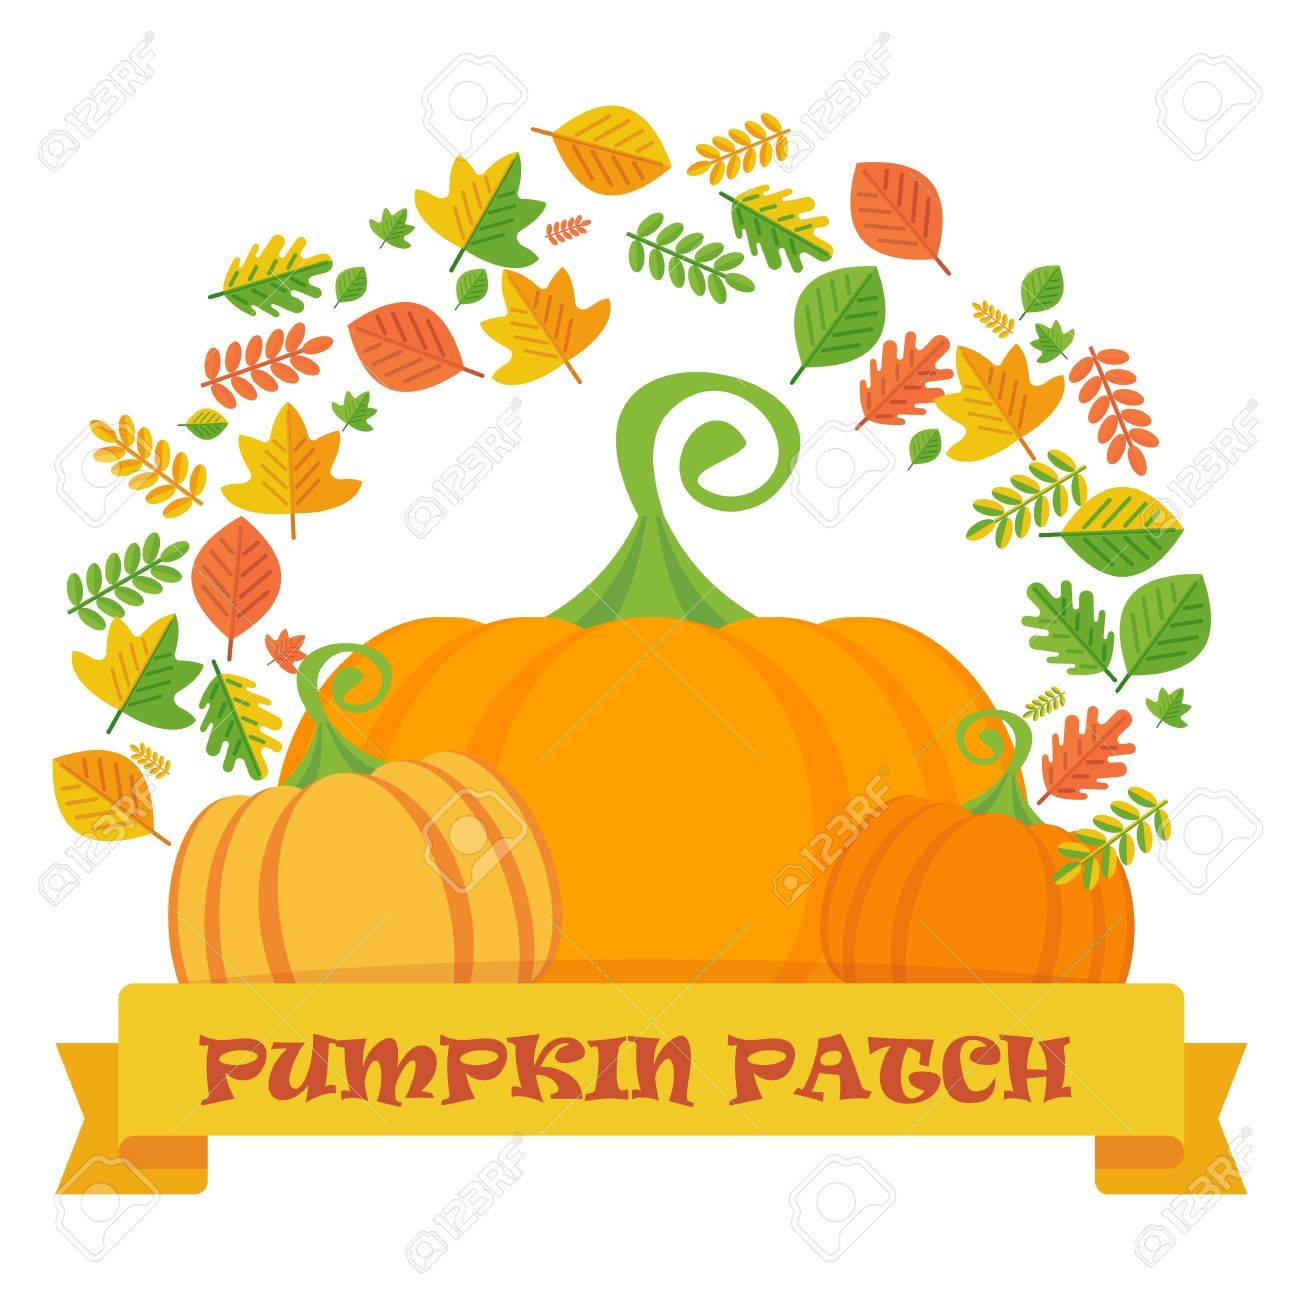 Vector Pumpkin Patch With Leaves Frame Template For Postcards Royalty Free Cliparts Vectors And Stock Illustration Image 63311997